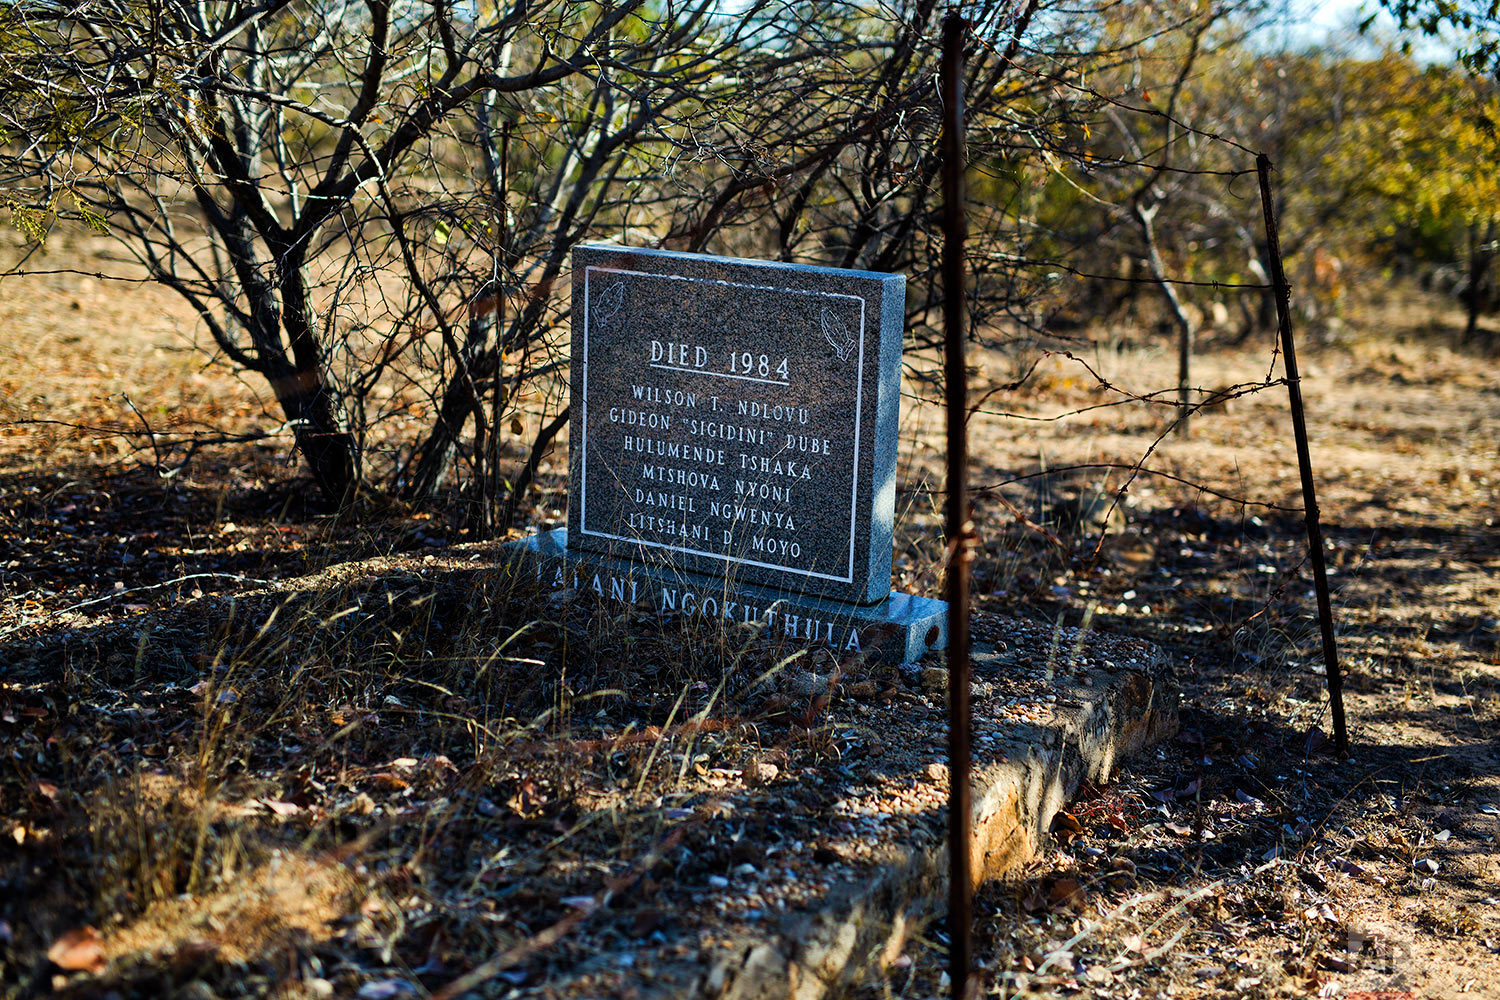 A mass grave bearing the names of six victims of the the Matabeleland Massacres, near the now abandoned Zimbabwean Sitezi military camp. (AP Photo/Jerome Delay)